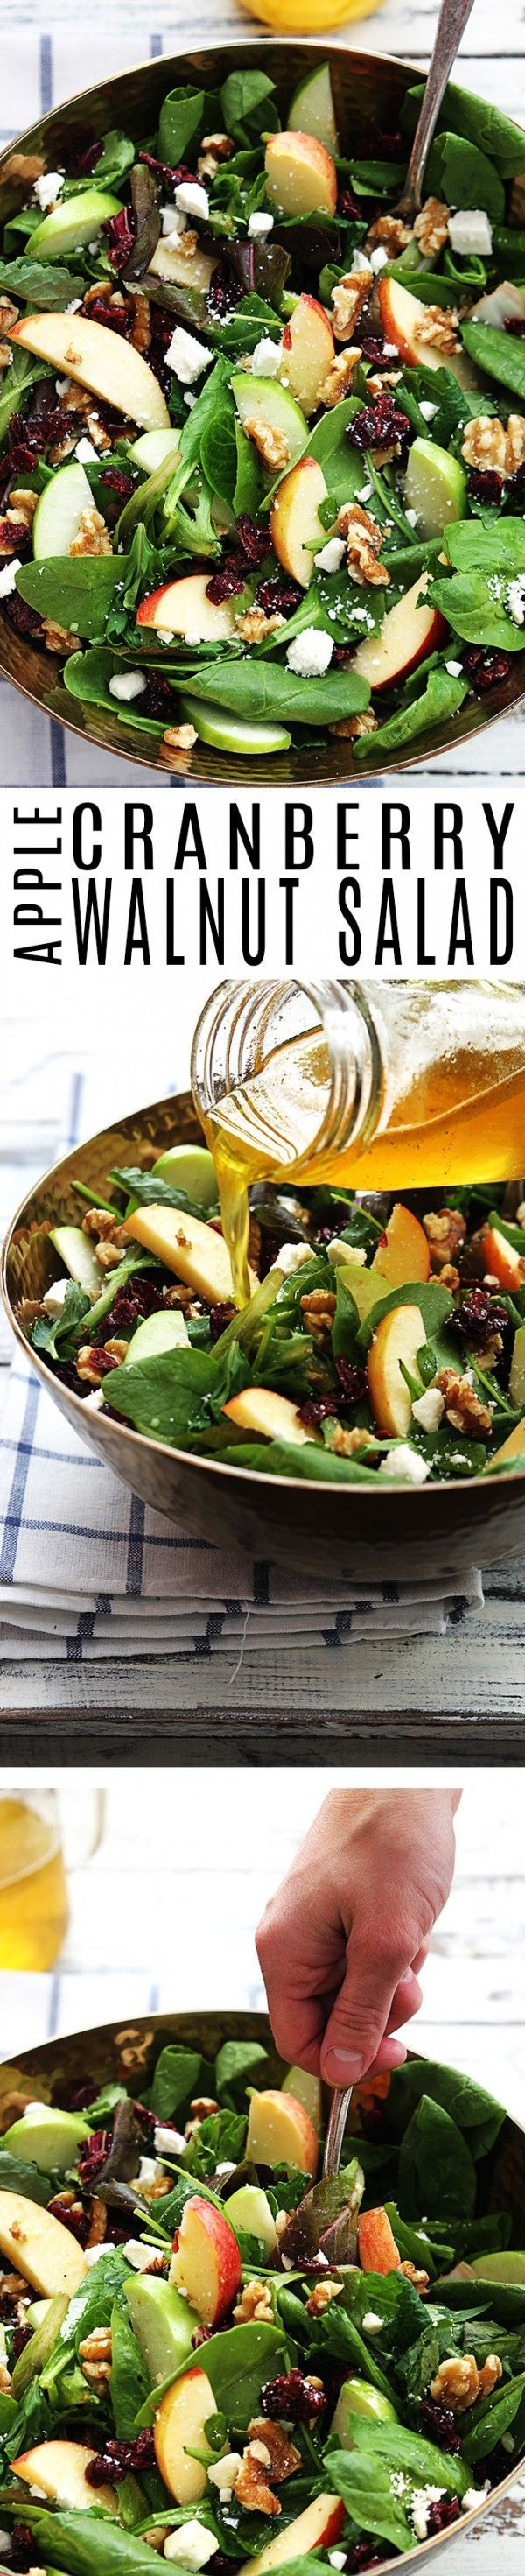 Get the recipe ♥️ Apple Cranberry Walnut Salad #besttoeat @recipes_to_go